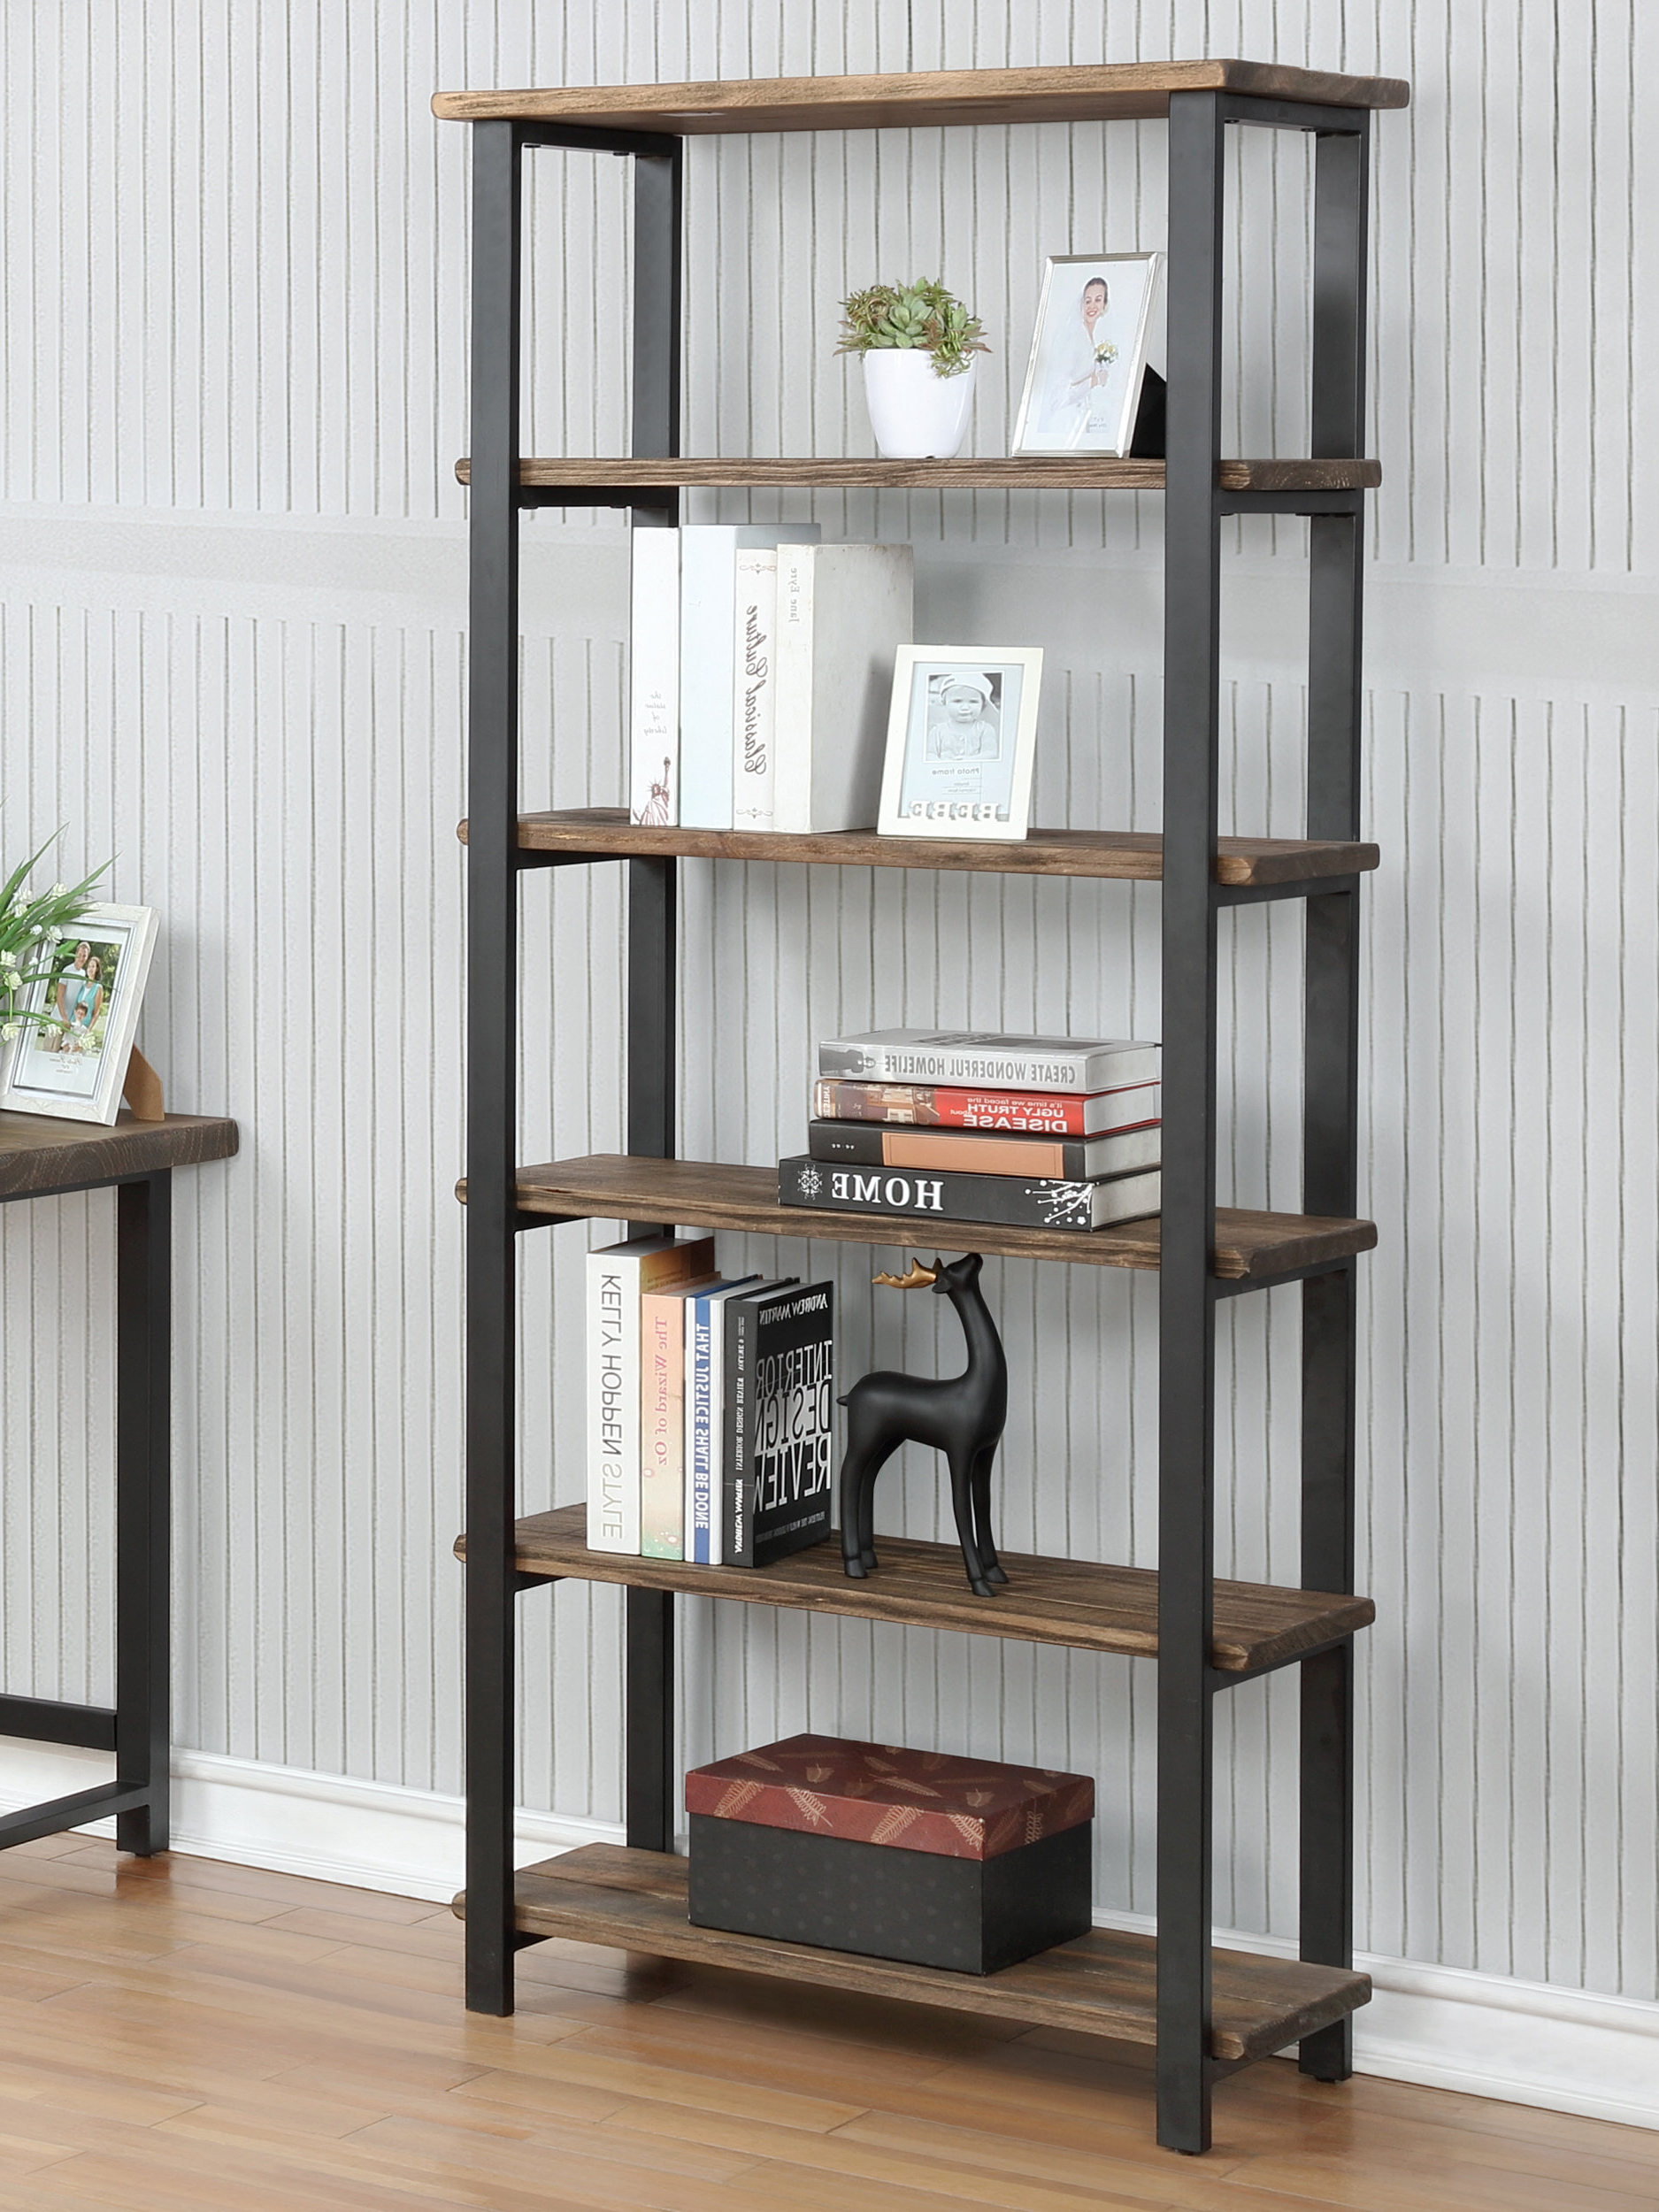 Veropeso Etagere Bookcase For Recent Hitz Etagere Bookcases (View 17 of 20)